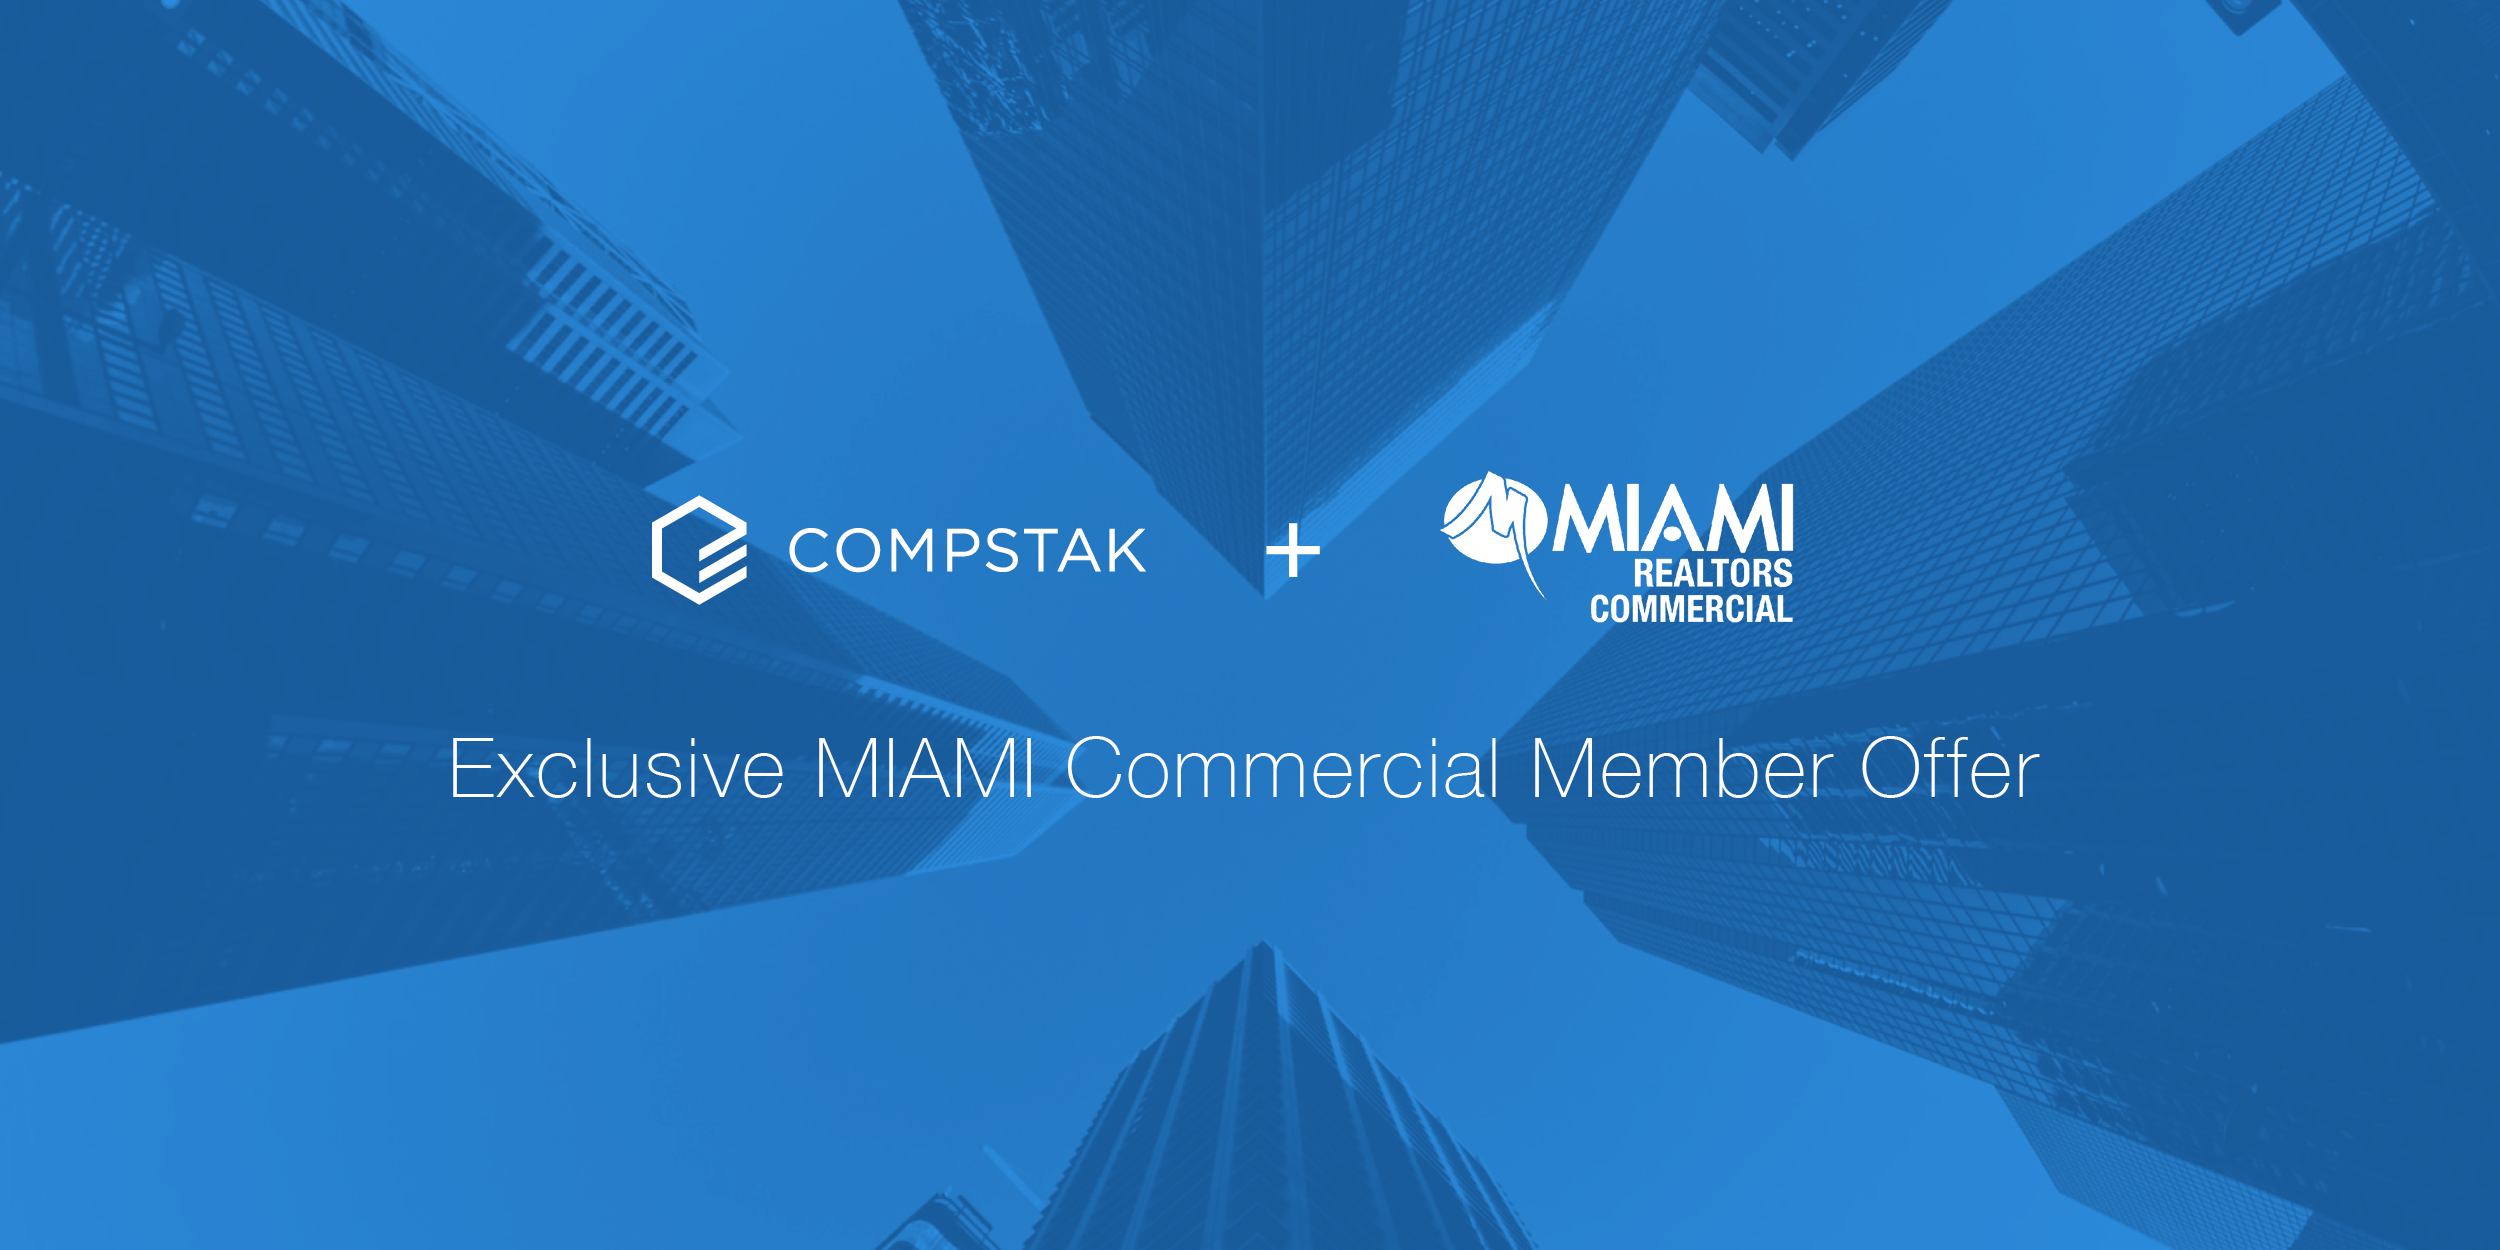 CompStak and Miami Commercial Partnership